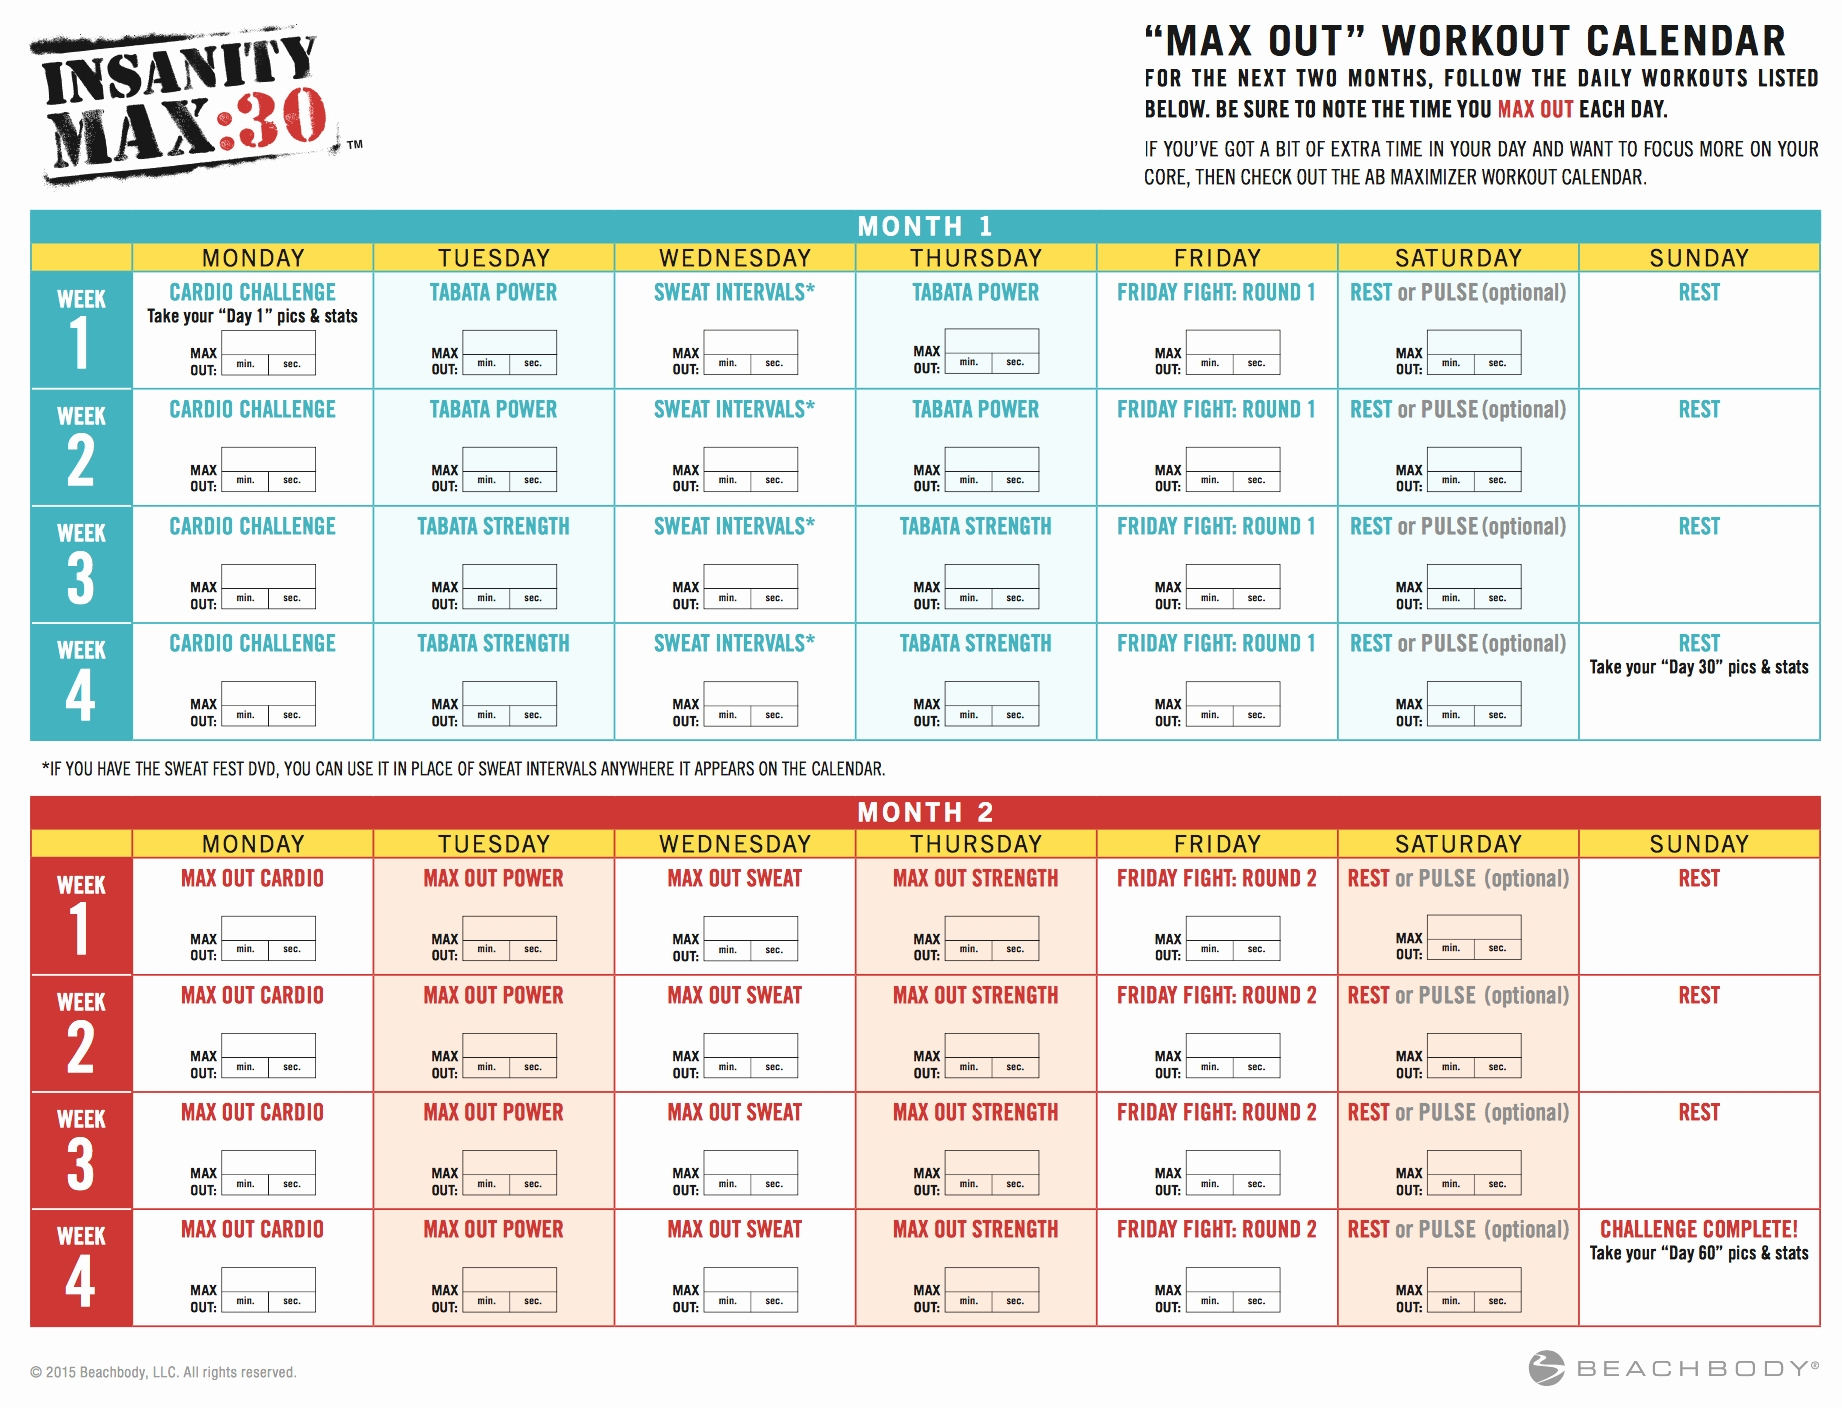 Insanity Calendar Print Out | Monthly Printable Calender throughout Insanity Max 30 Calendar